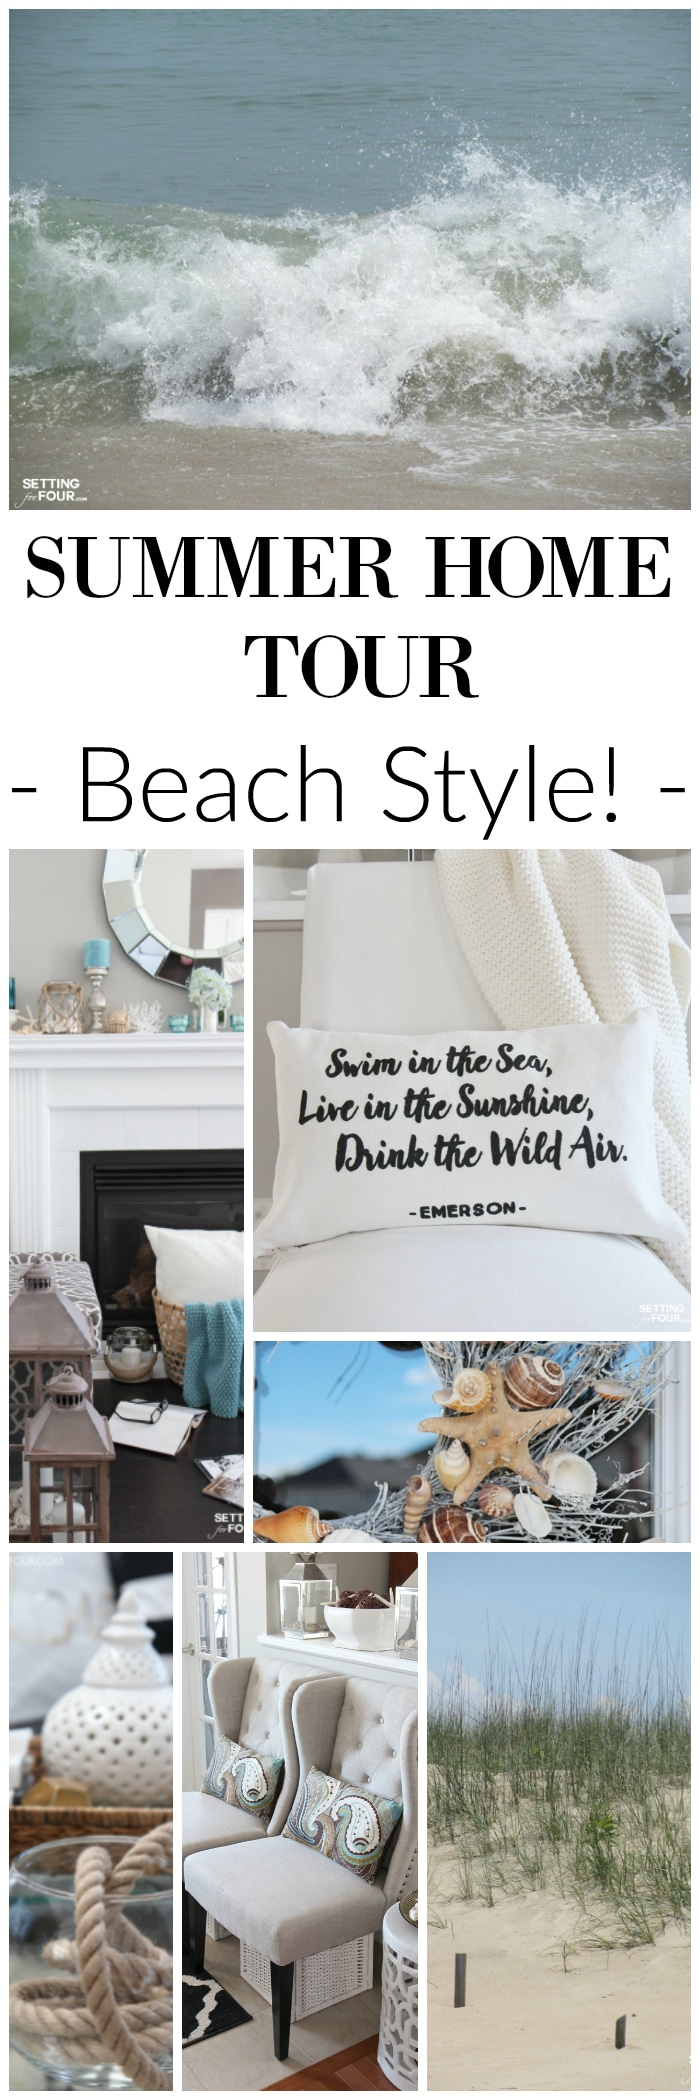 See this beautiful Summer Home Tour - BEACH STYLE! Lots of home decor ideas for summertime.